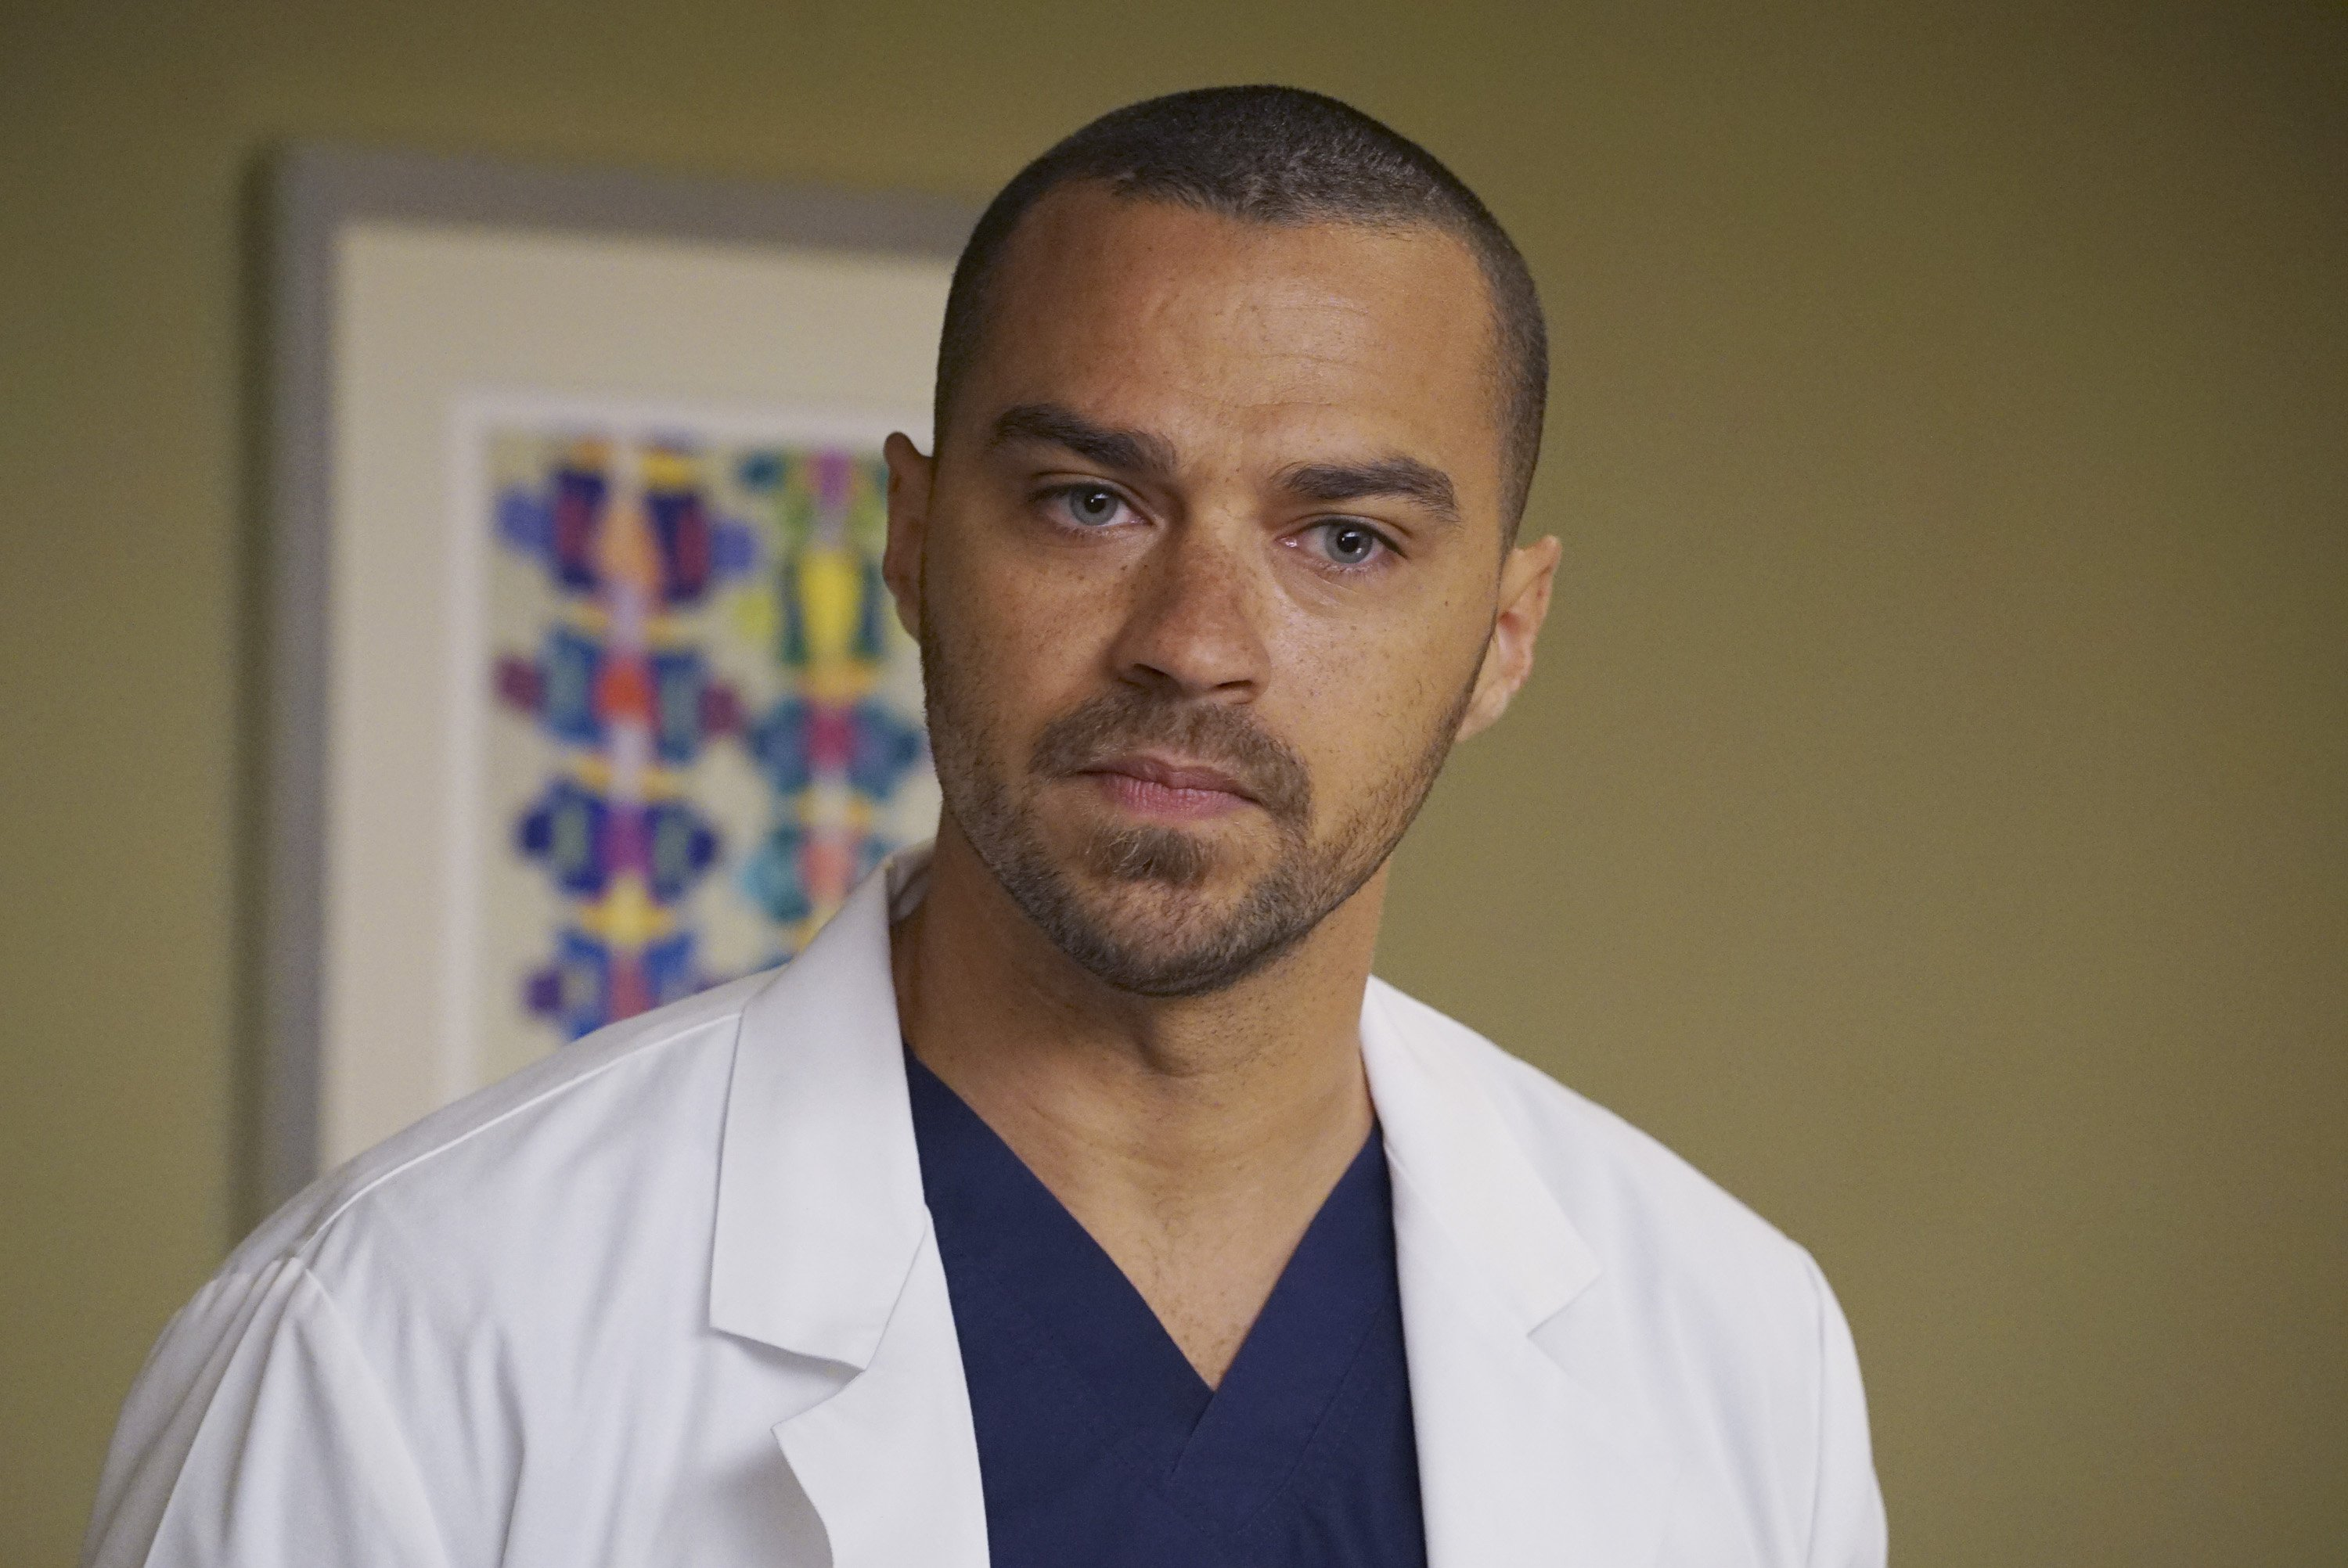 """Jesse Williams as Dr. Jackson Avery on an episode of """"Grey's Anatomy,"""" 2016. 